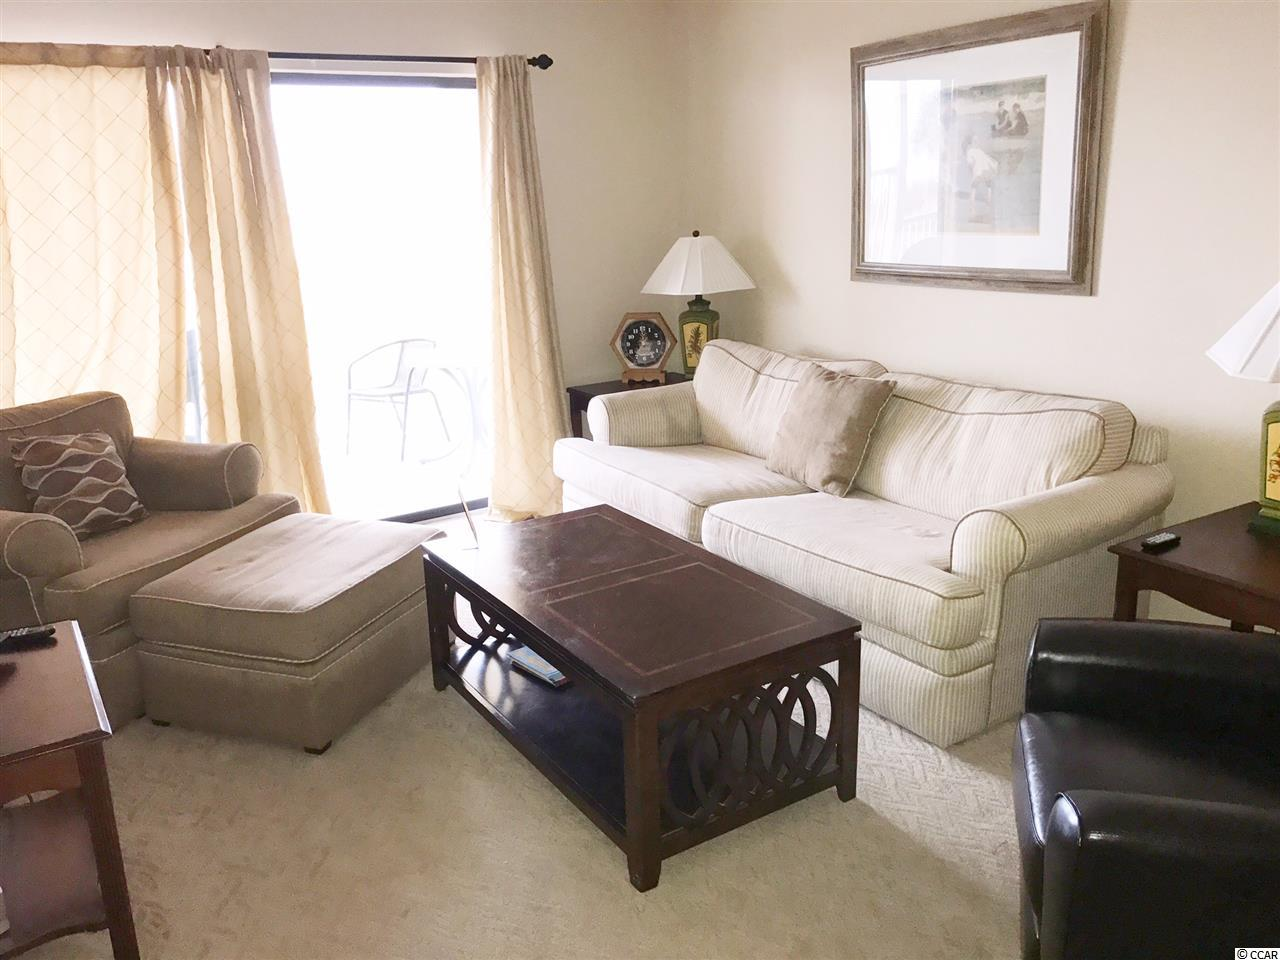 3 bedroom  Windy Shores II condo for sale